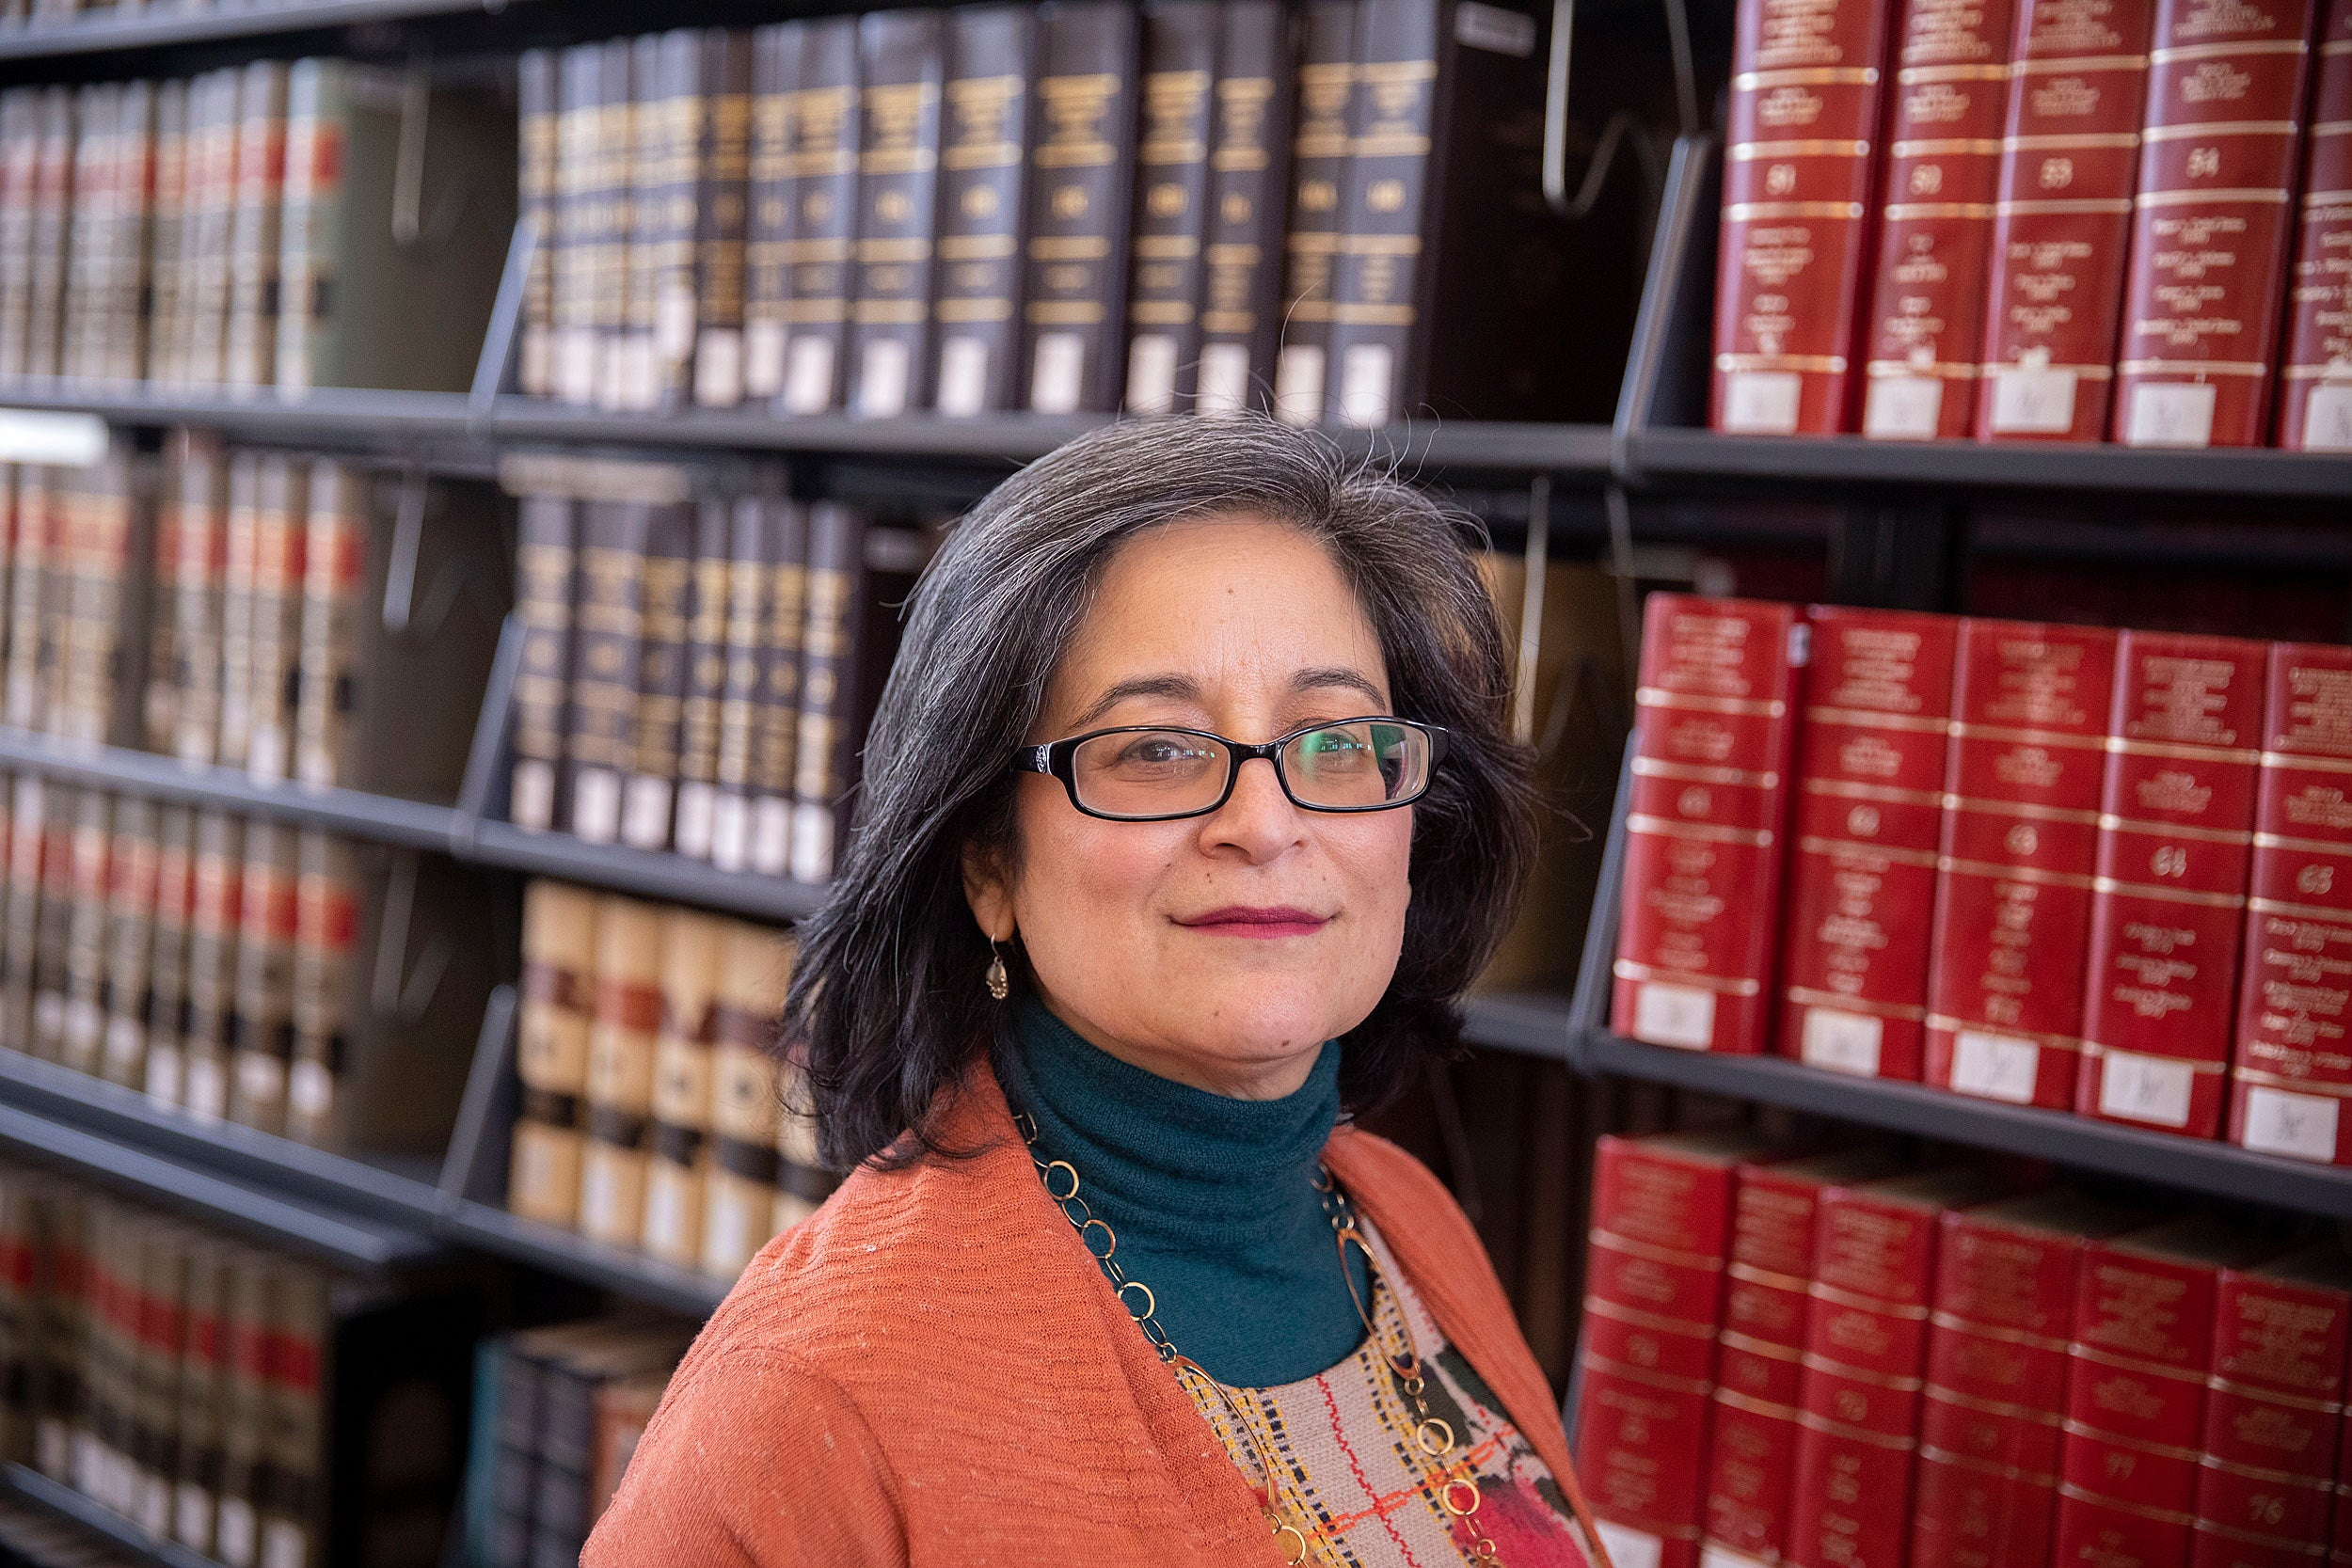 Diane Lopez is seen at Langdell Library.